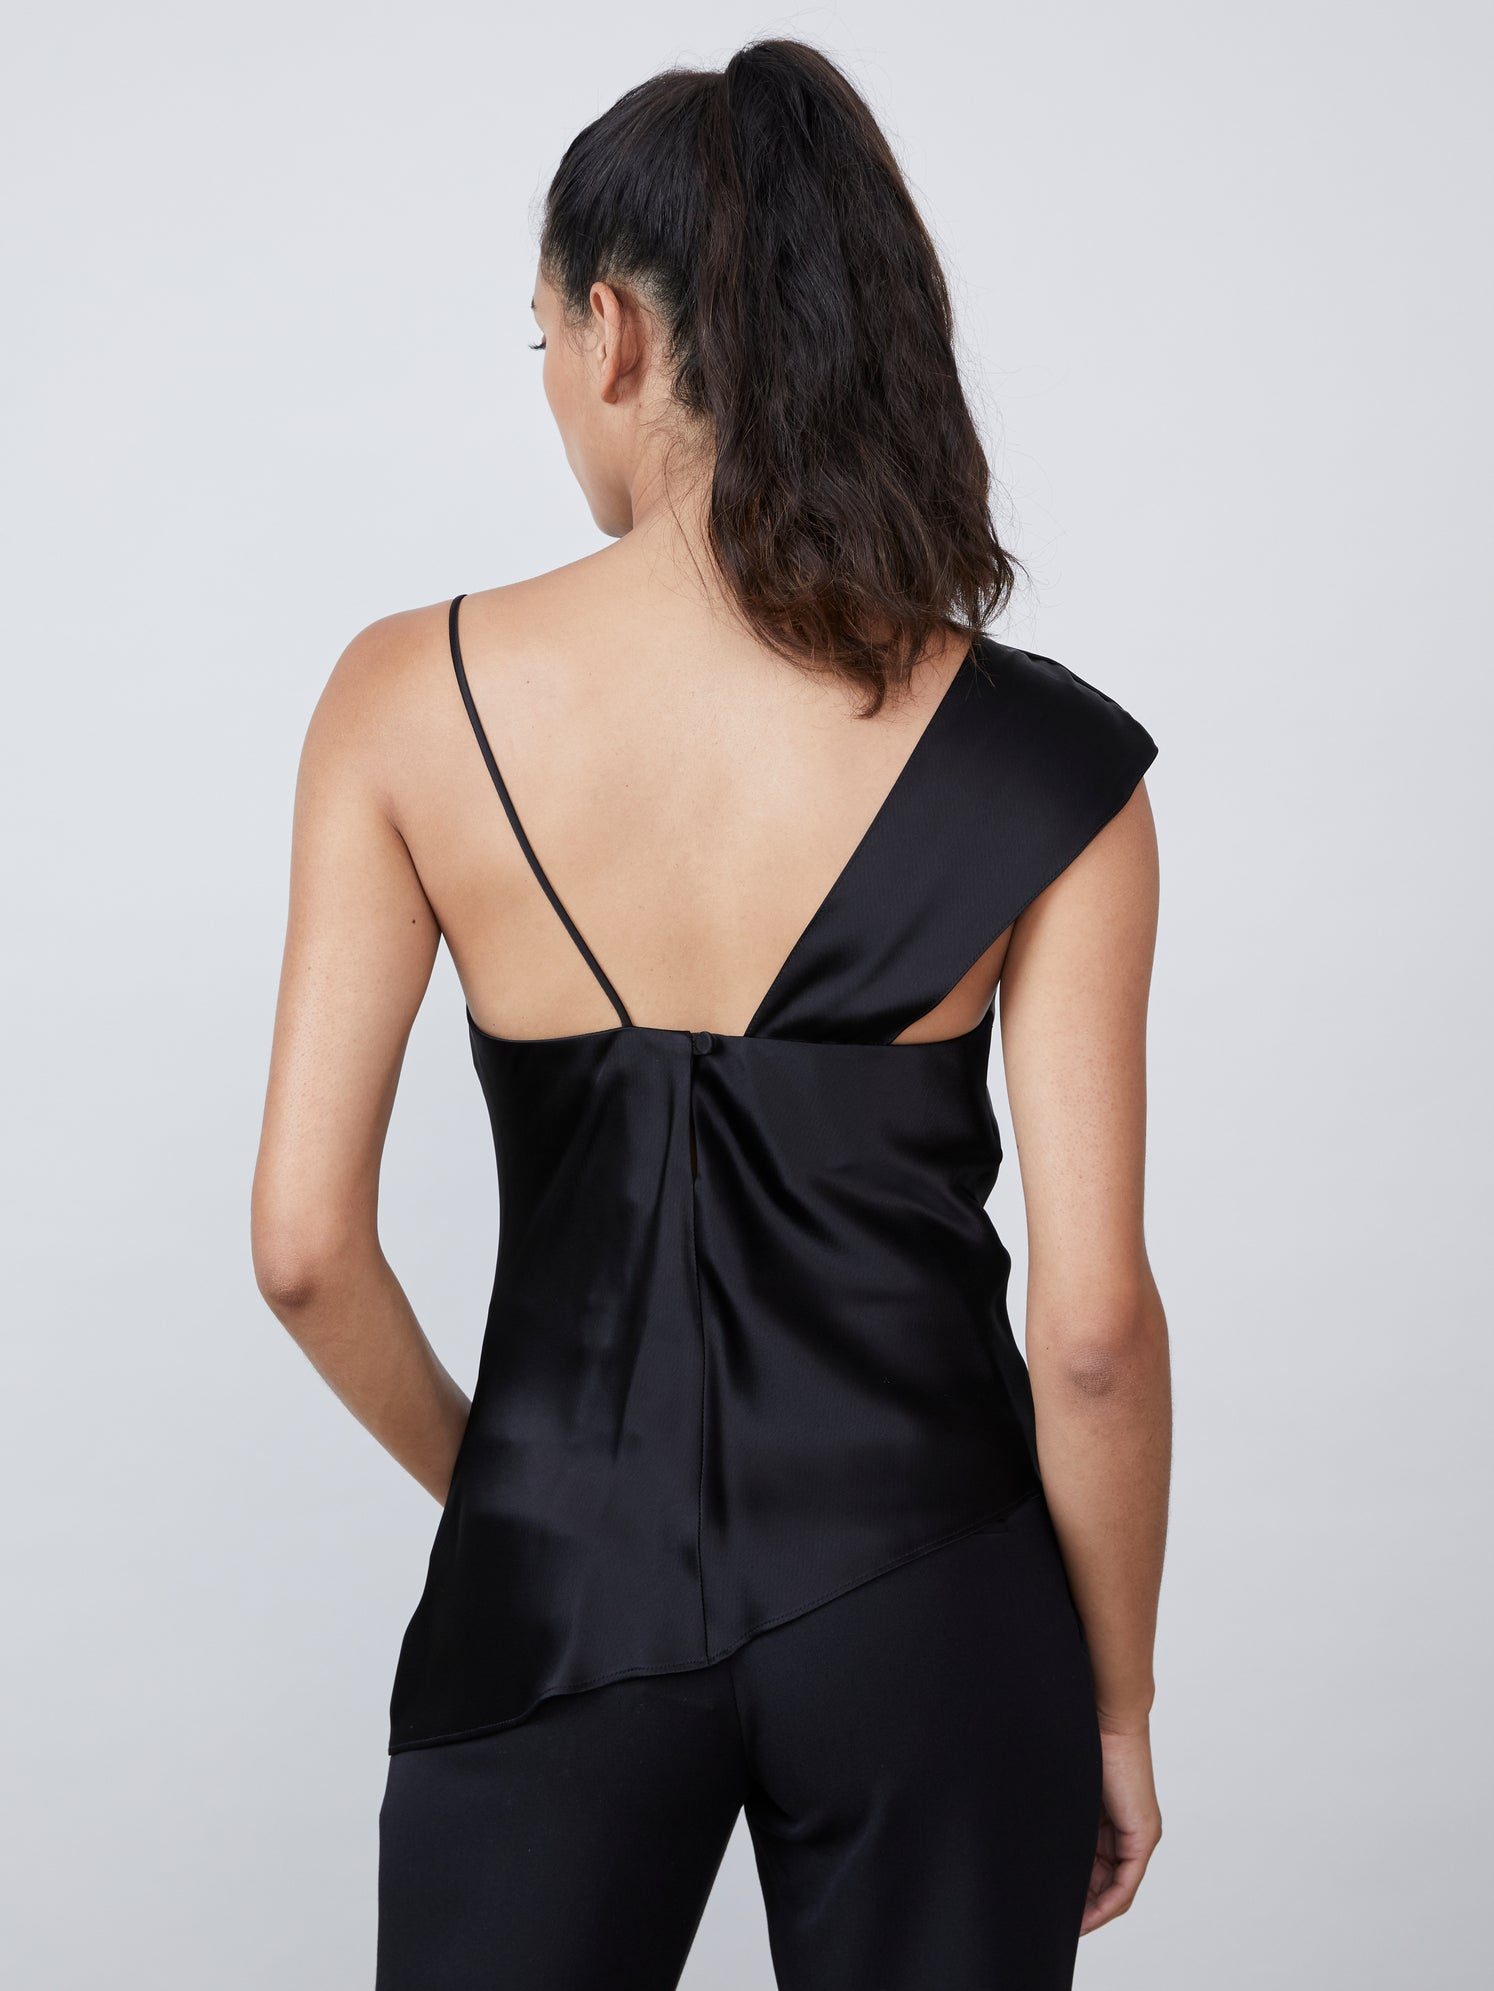 Black crepe satin one shoulder top with asymmetrical hemline and cowl neckline Alternate